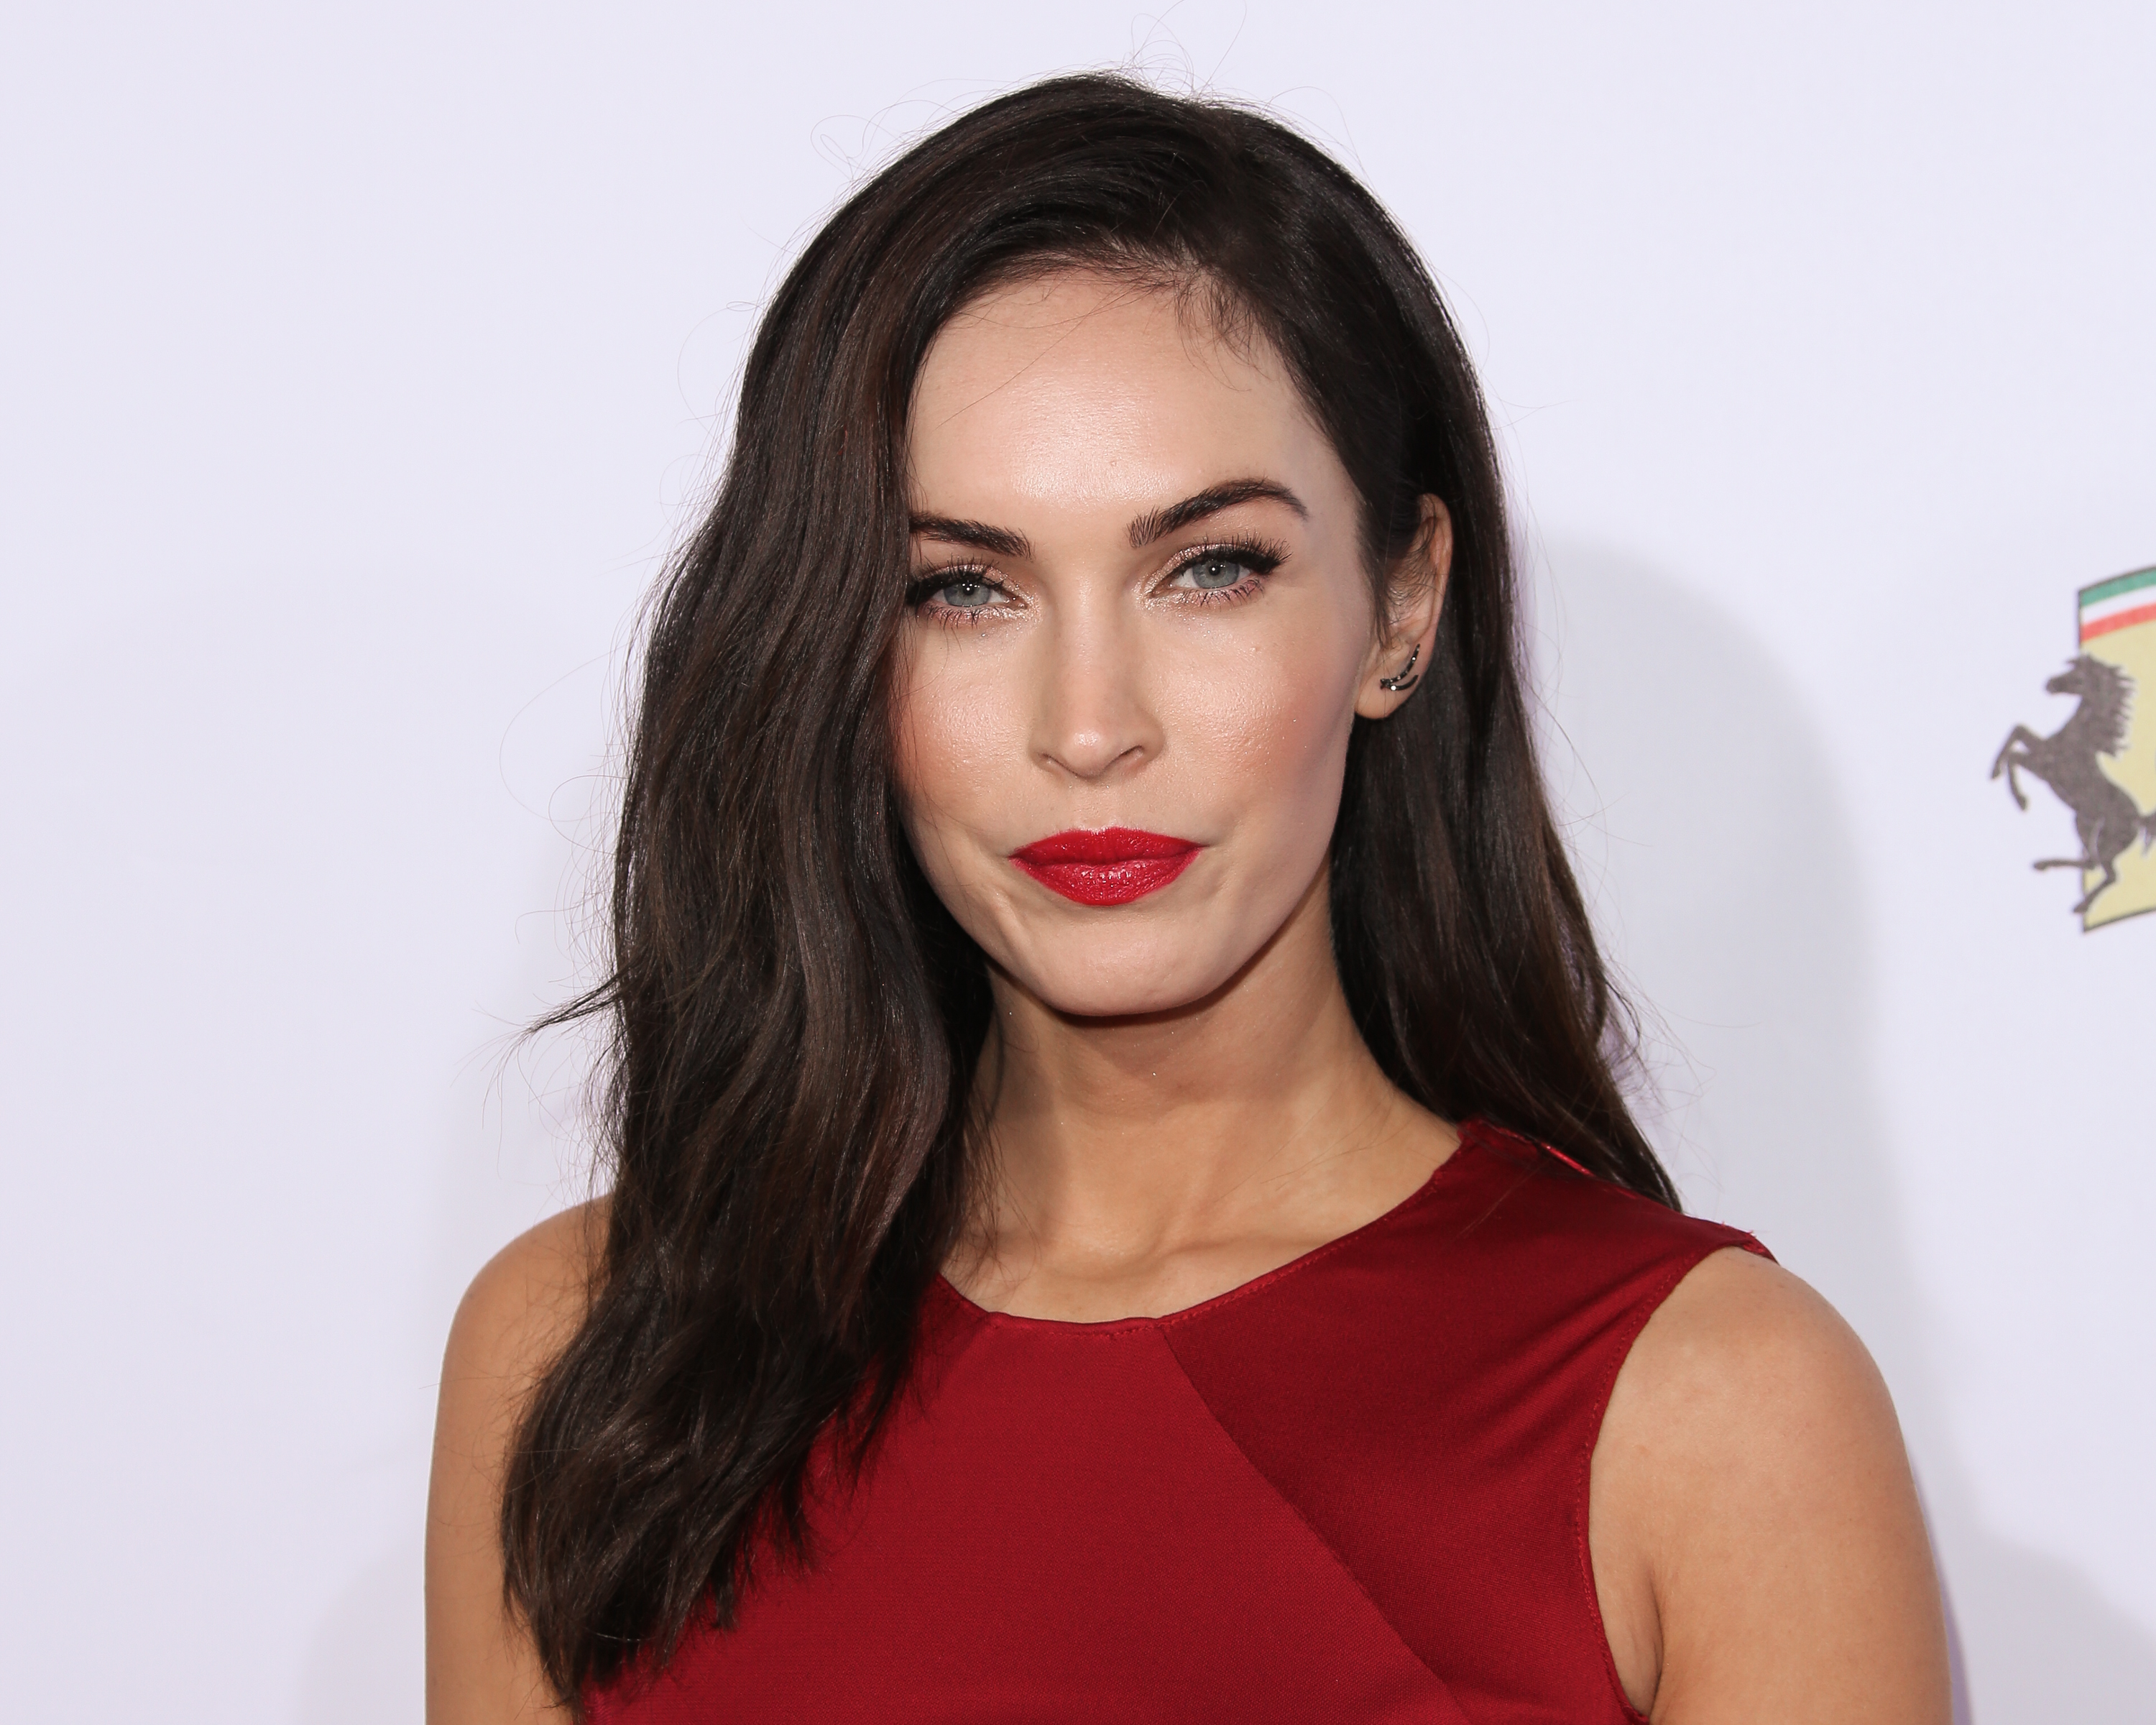 Megan Fox attends Ferrari's 60th Anniversary In The USA Gala at the Wallis Annenberg Center for the Performing Arts  in Beverly Hills, Calif. on Oct. 11, 2014.